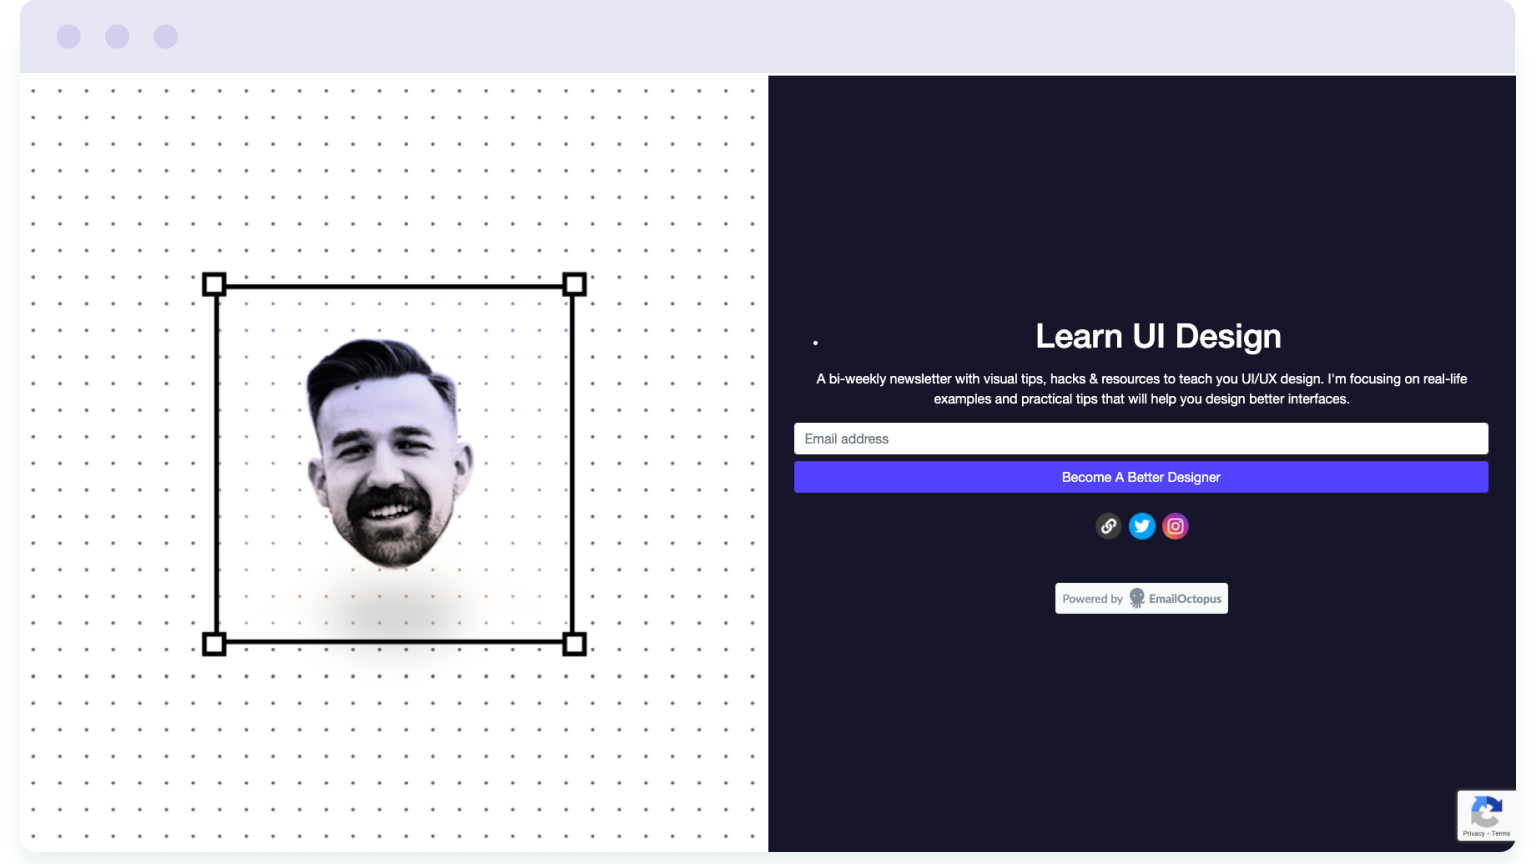 Image of a landing page, which is needed to build an email list without a full-blown website